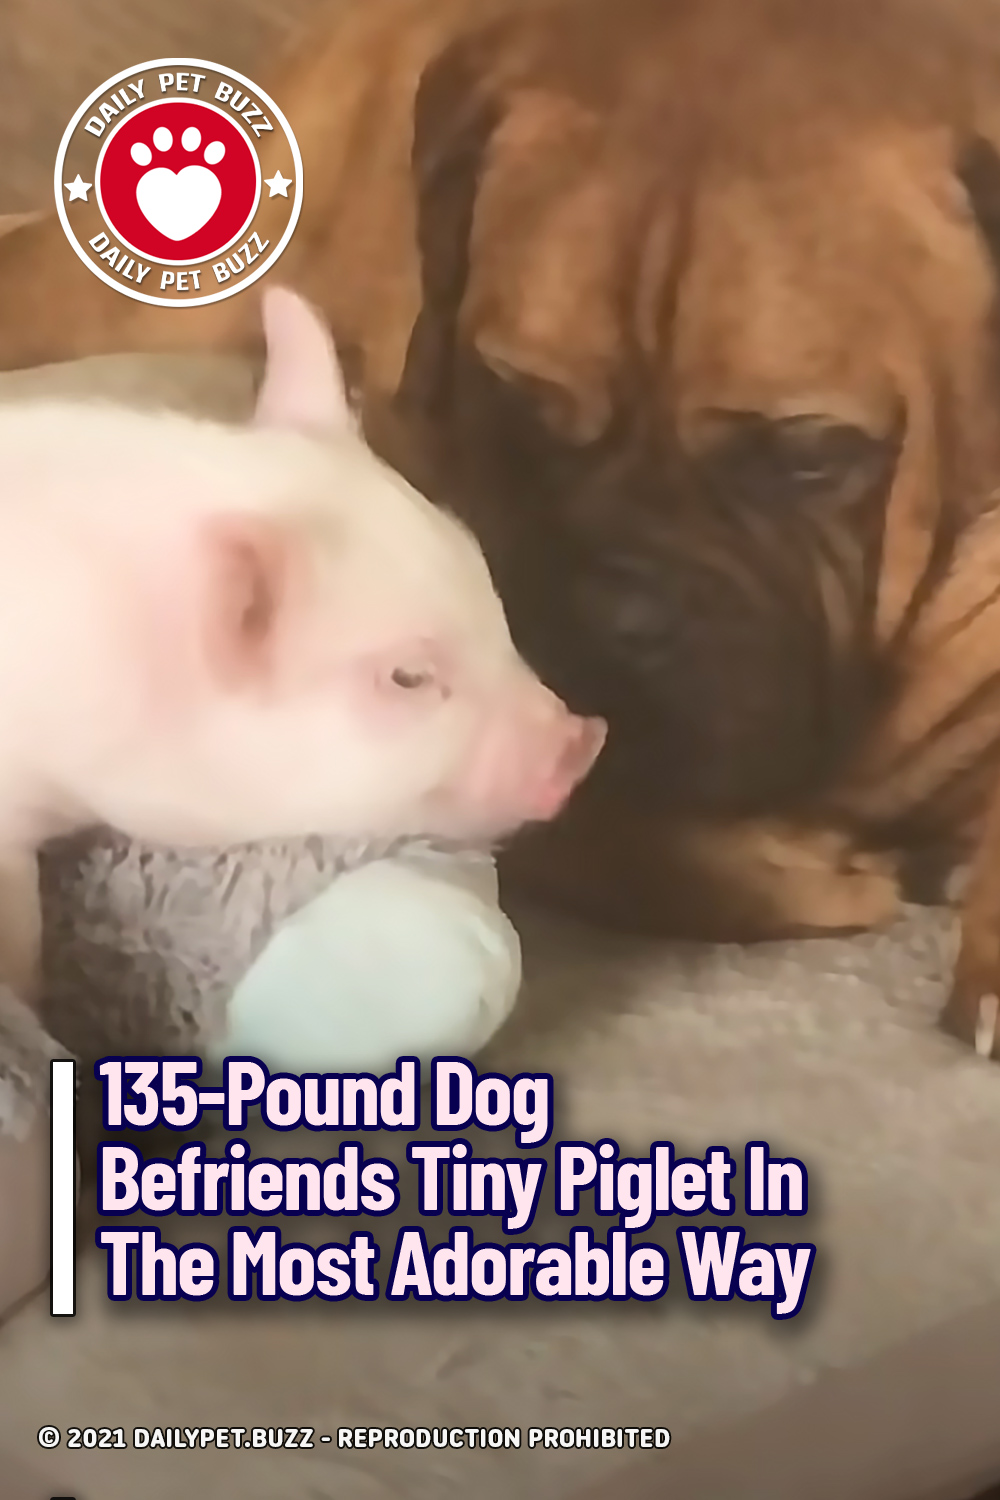 135-Pound Dog Befriends Tiny Piglet In The Most Adorable Way